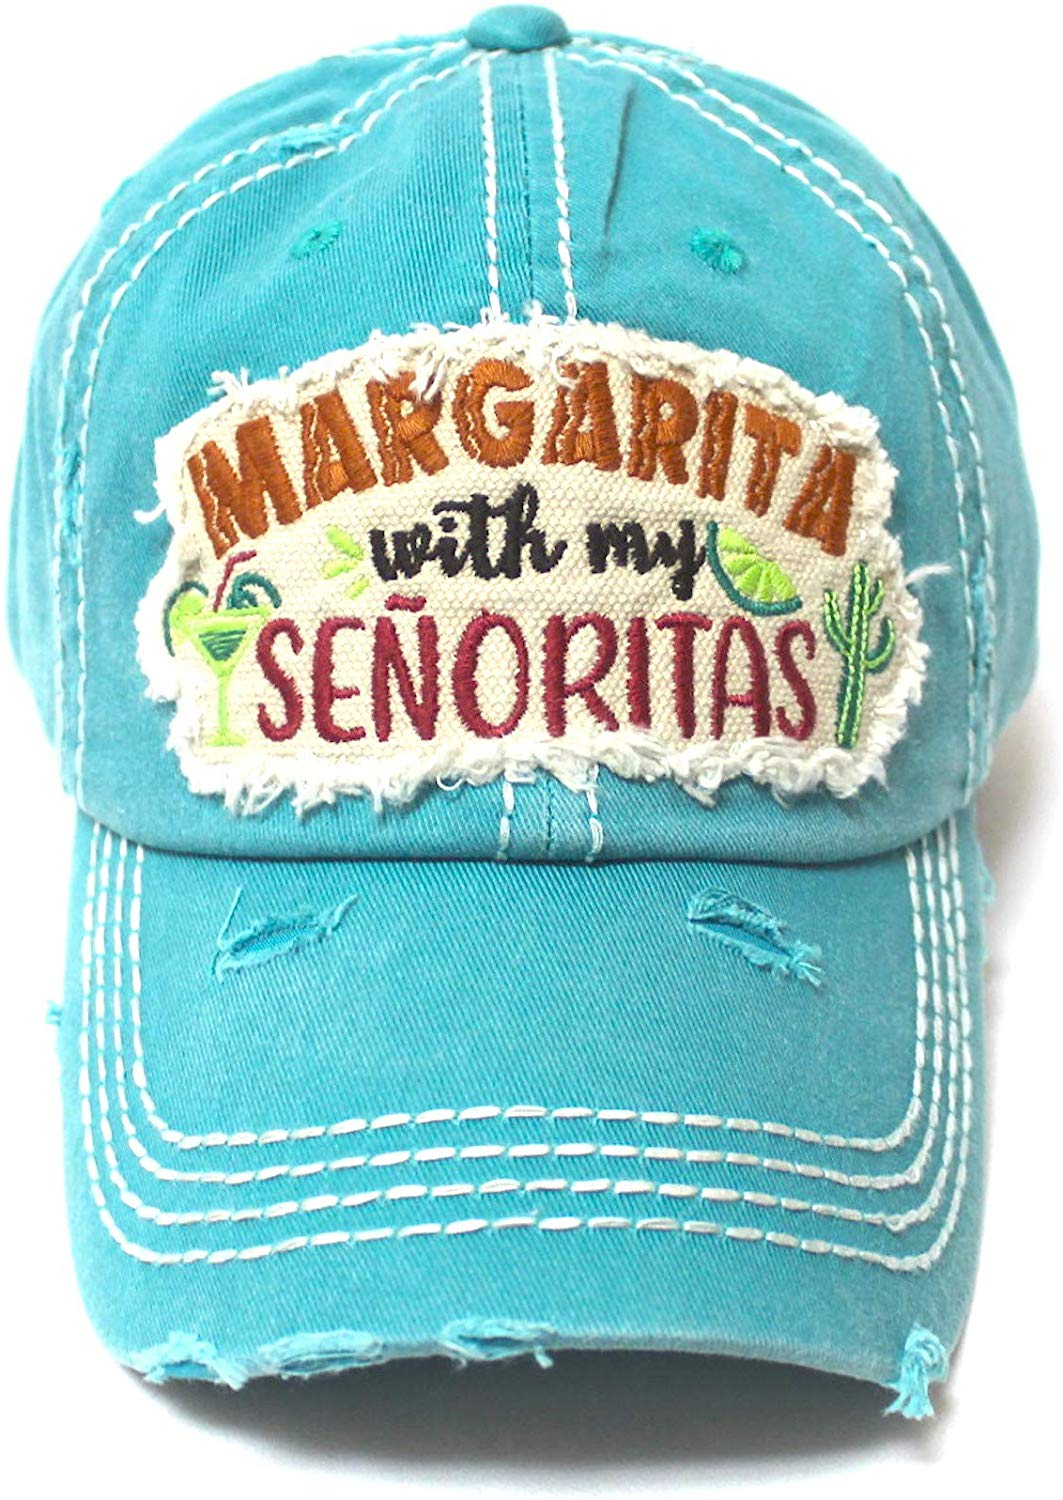 CAPS 'N VINTAGE Women's Ballcap Margarita with My Senoritas Beach Themed Patch Embroidery Hat, Turquoise Blue - Caps 'N Vintage